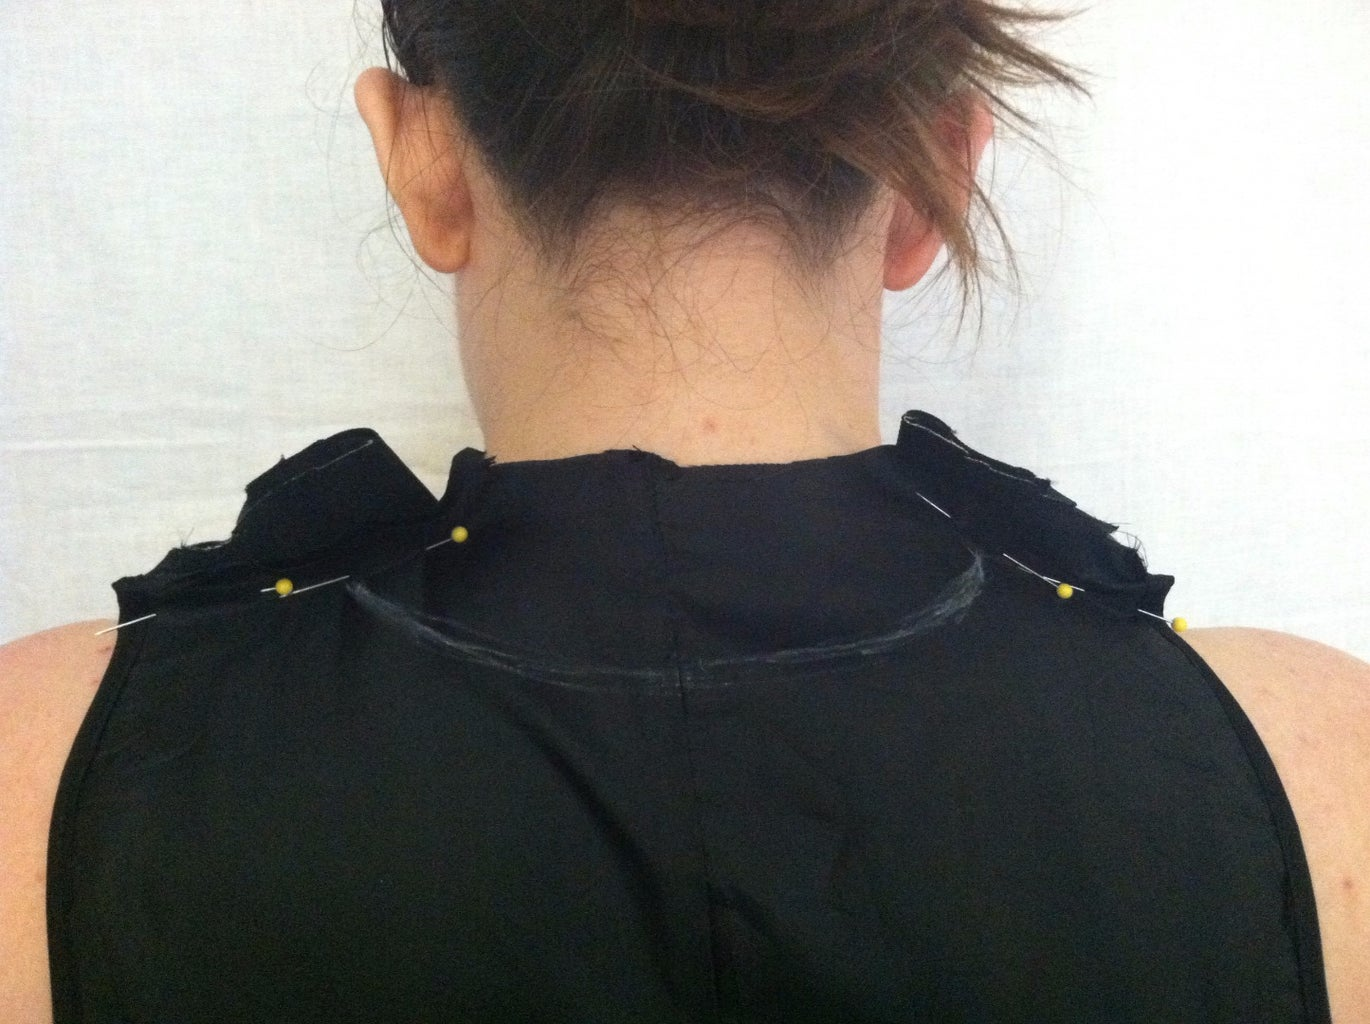 Drawing and Cutting the Neckline